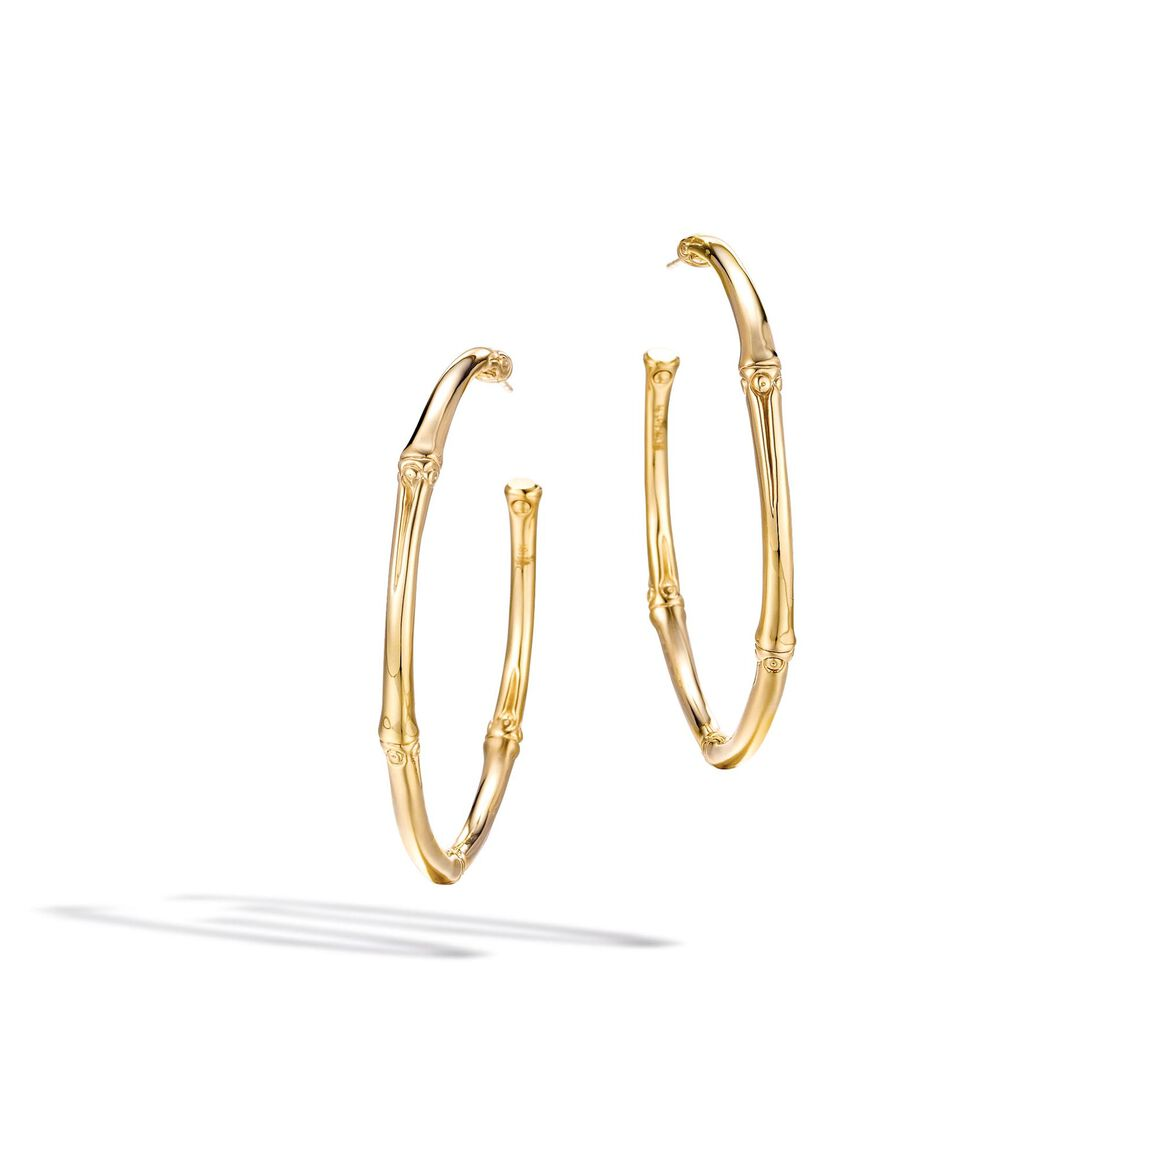 Bamboo Large Hoop Earring in 18K Gold